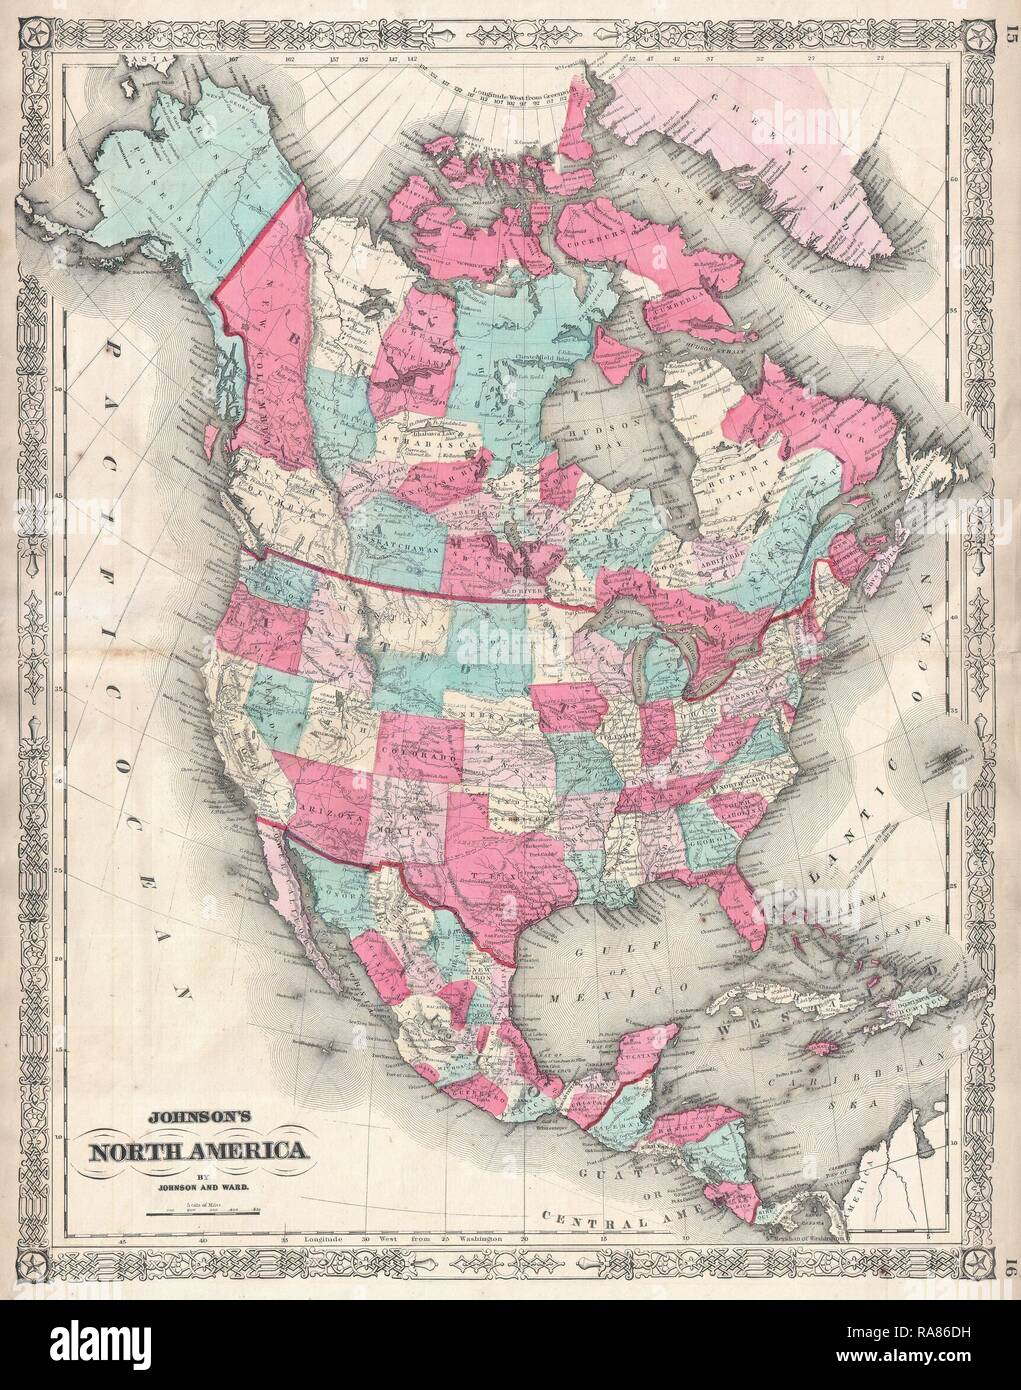 1864, Johnson Map of North America, Canada, United States, Mexico ...